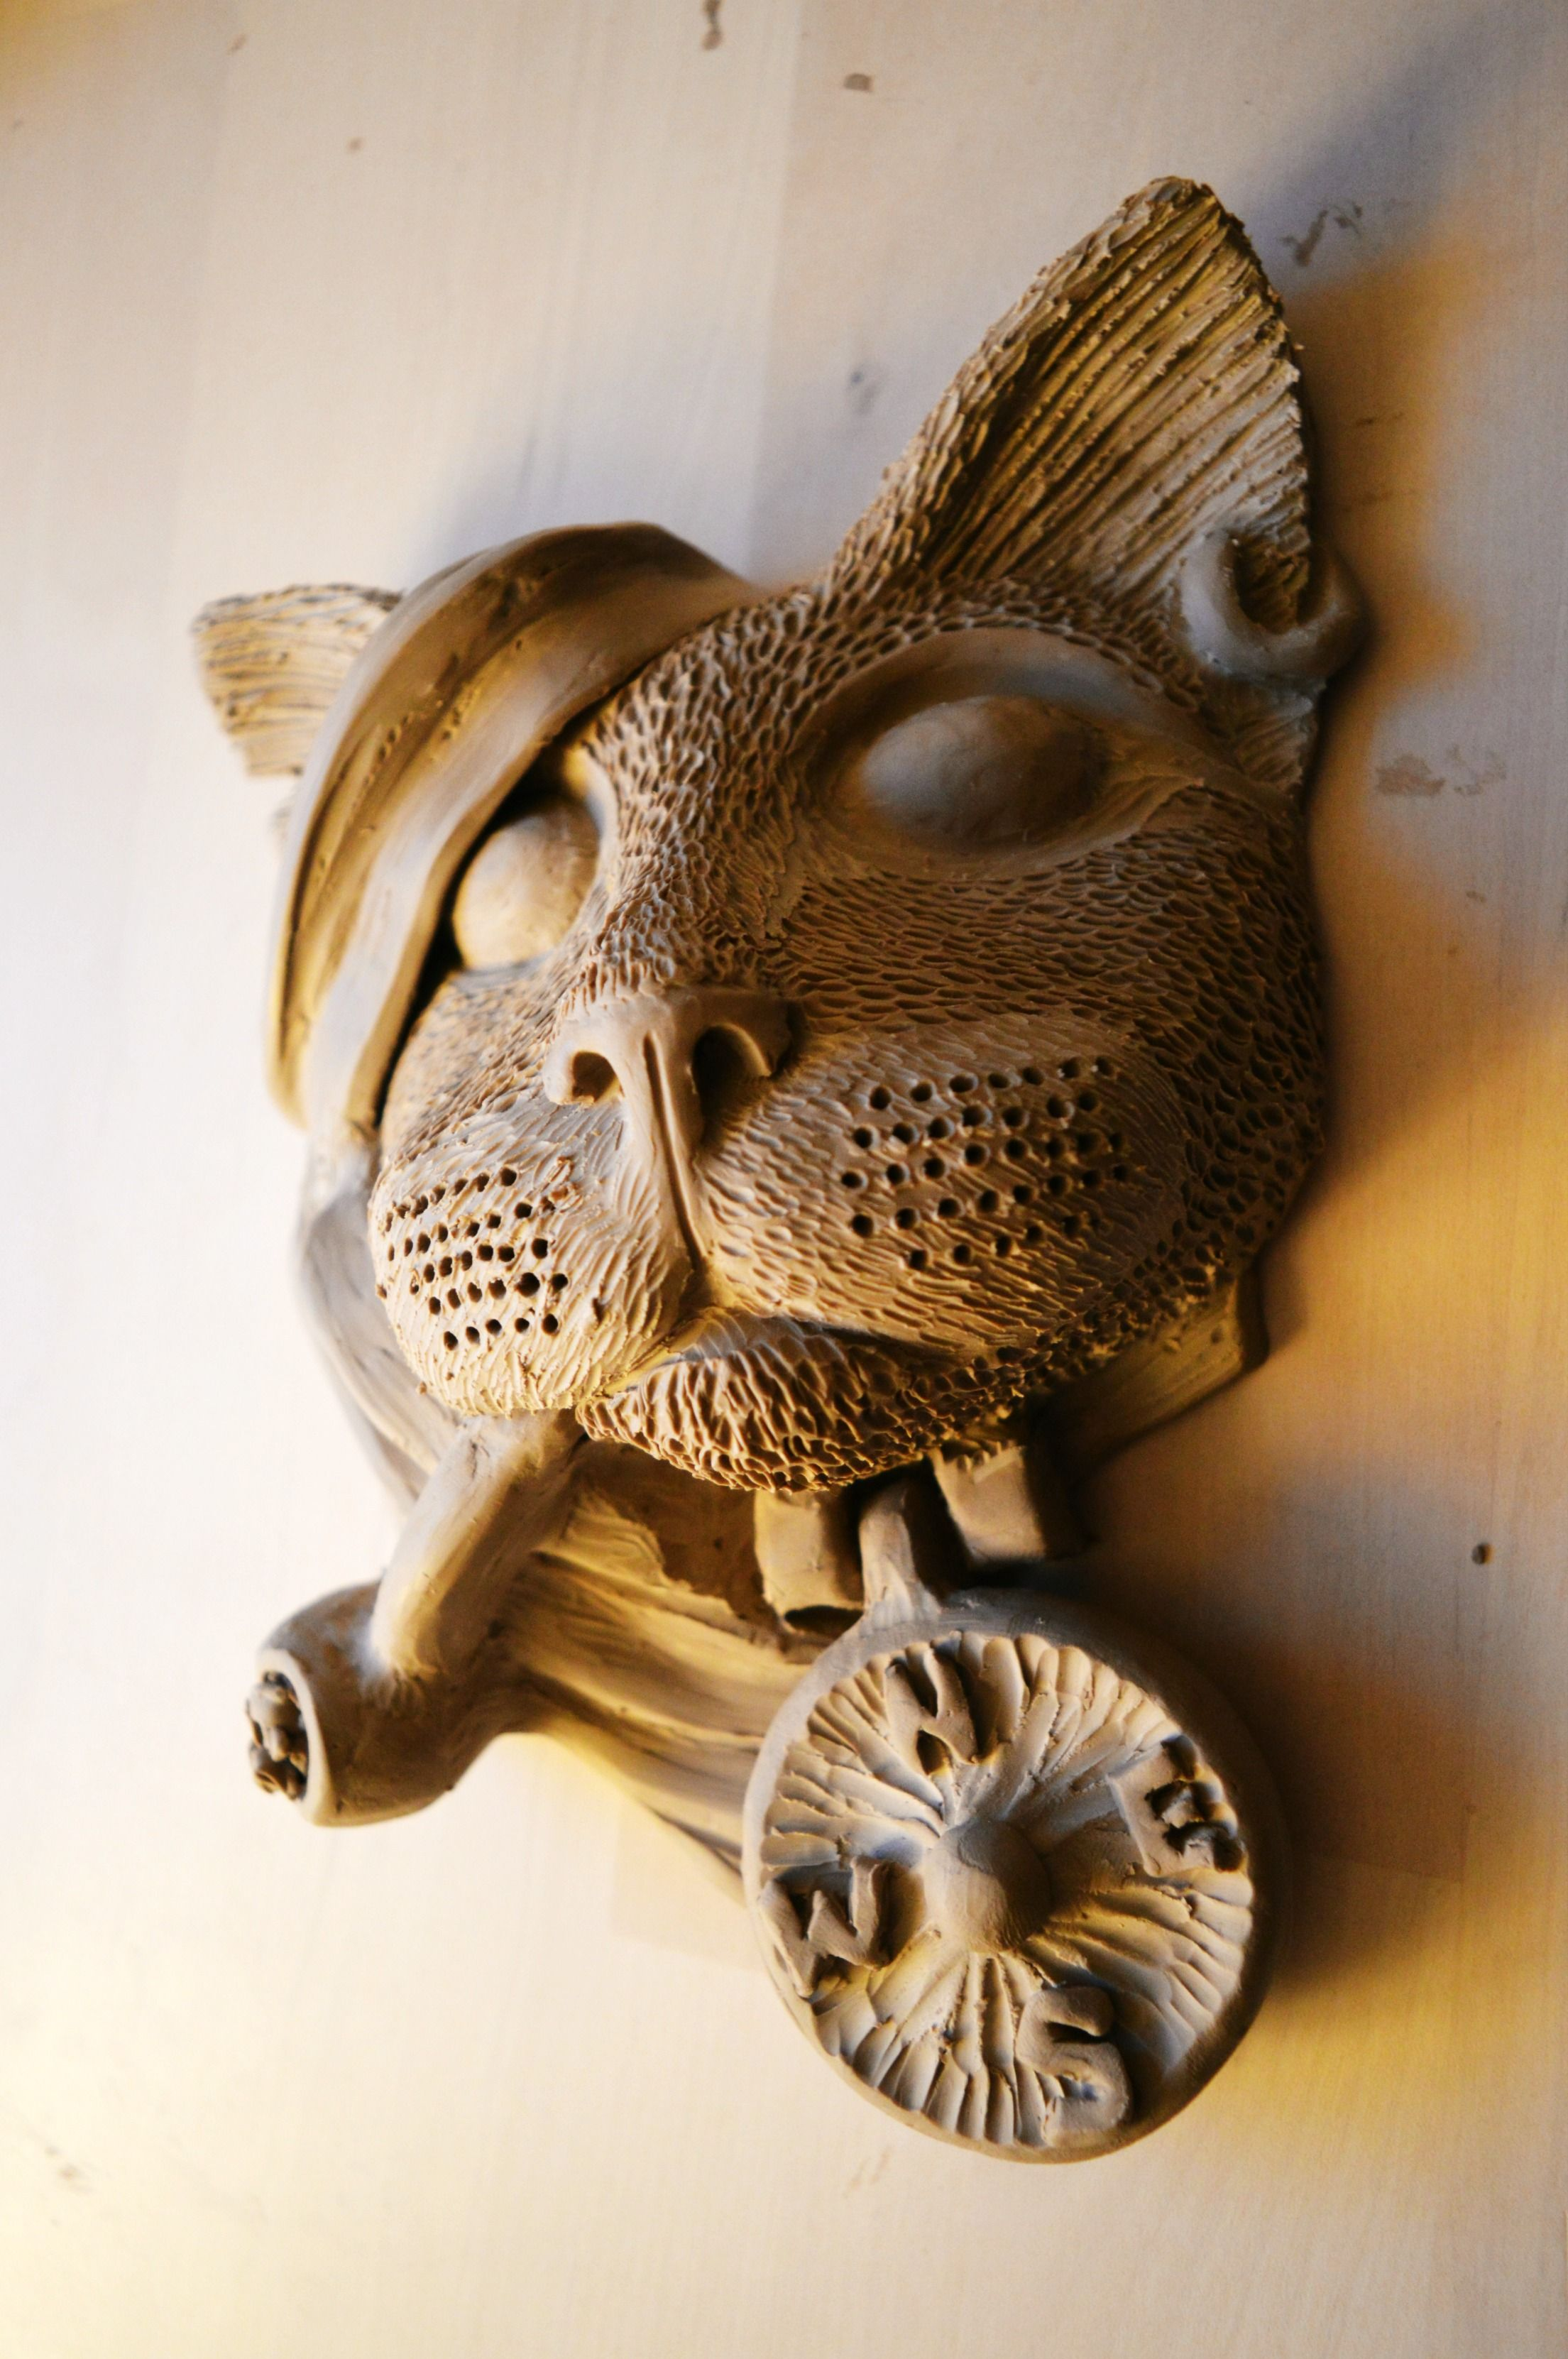 Our Hand Sculpted Pirate Cat Door Knocker Design Shall Be Cast In Bronze Shortly Cat Crafts Pirate Cat Cat Door